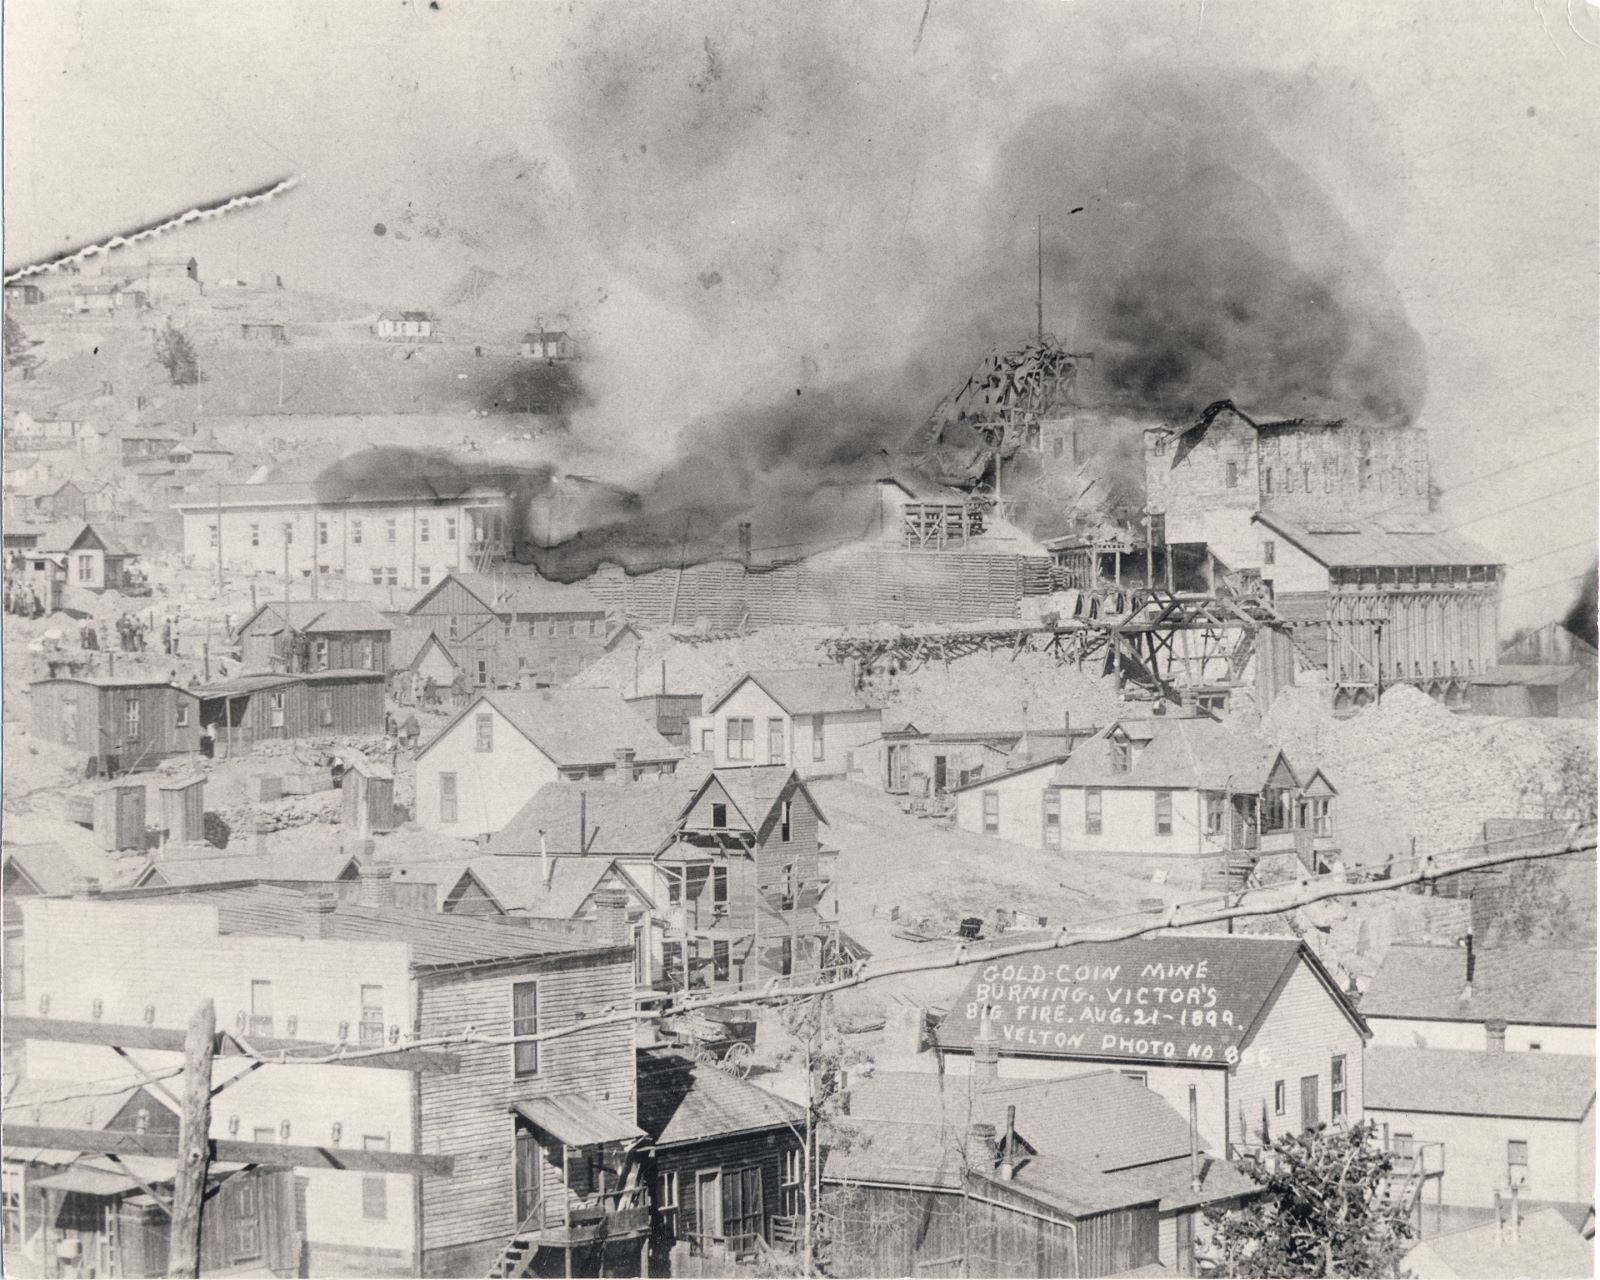 "While this photo has some damages done to it, I still think this view tells the story of the old Gold Coin mine, the one burning this fateful day, quite well! There is a story in a book titled ""Cripple Creek District: Last of Colorado's Gold Booms"" by Jan MacKell (Collins) where there is included a letter by J.A. Small to his wife, mention how he and unknown others escaped the flames through the ore house via the trestle, over the tracks – same trestle as seen in this view. What a feel they must have had, mine burning down behind them and nothing they can do!    This view also captures part of the town of Victor, how much of this is taken by flames I can't tell you, but I see at least one house is under construction, around center of the photo, a little left and down from center, three levels including the part under the roof of what is nearly a tower itself.    Many people are looking at the Gold Coin, and in the house seen below the trestle coming out of the ore-house of the Gold Coin, a lady stands on the porch, wondering over something I presume."